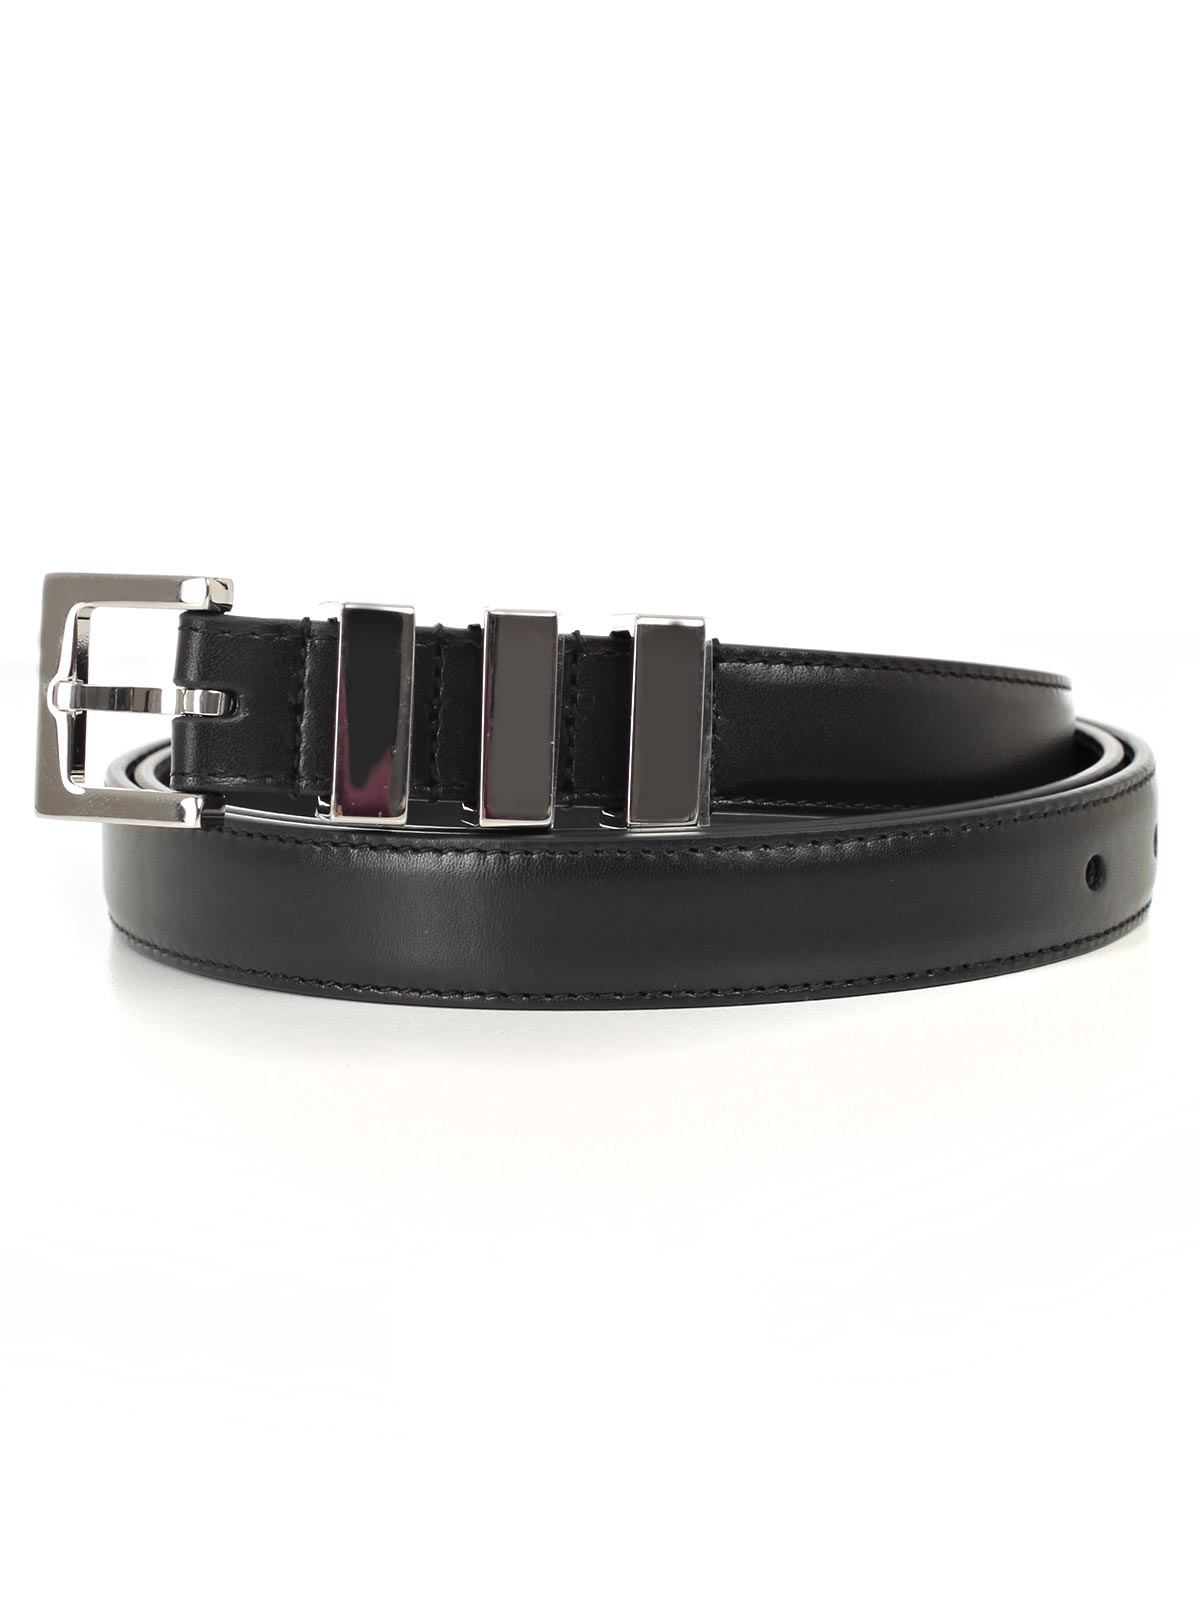 Picture of SAINT LAURENT BELT CINTURA